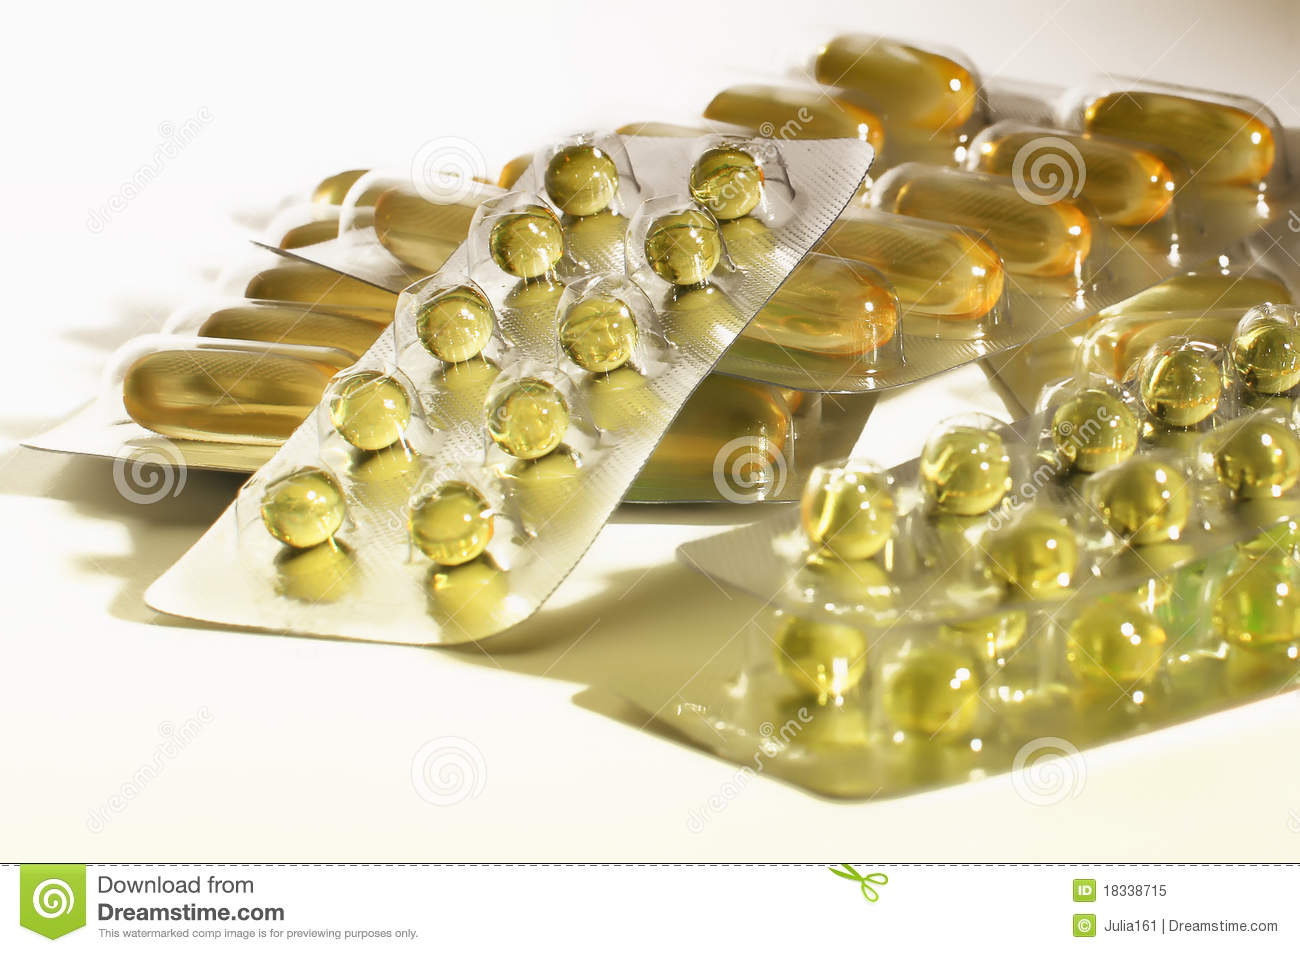 Vitamin E capsules. Its effect on the body 22